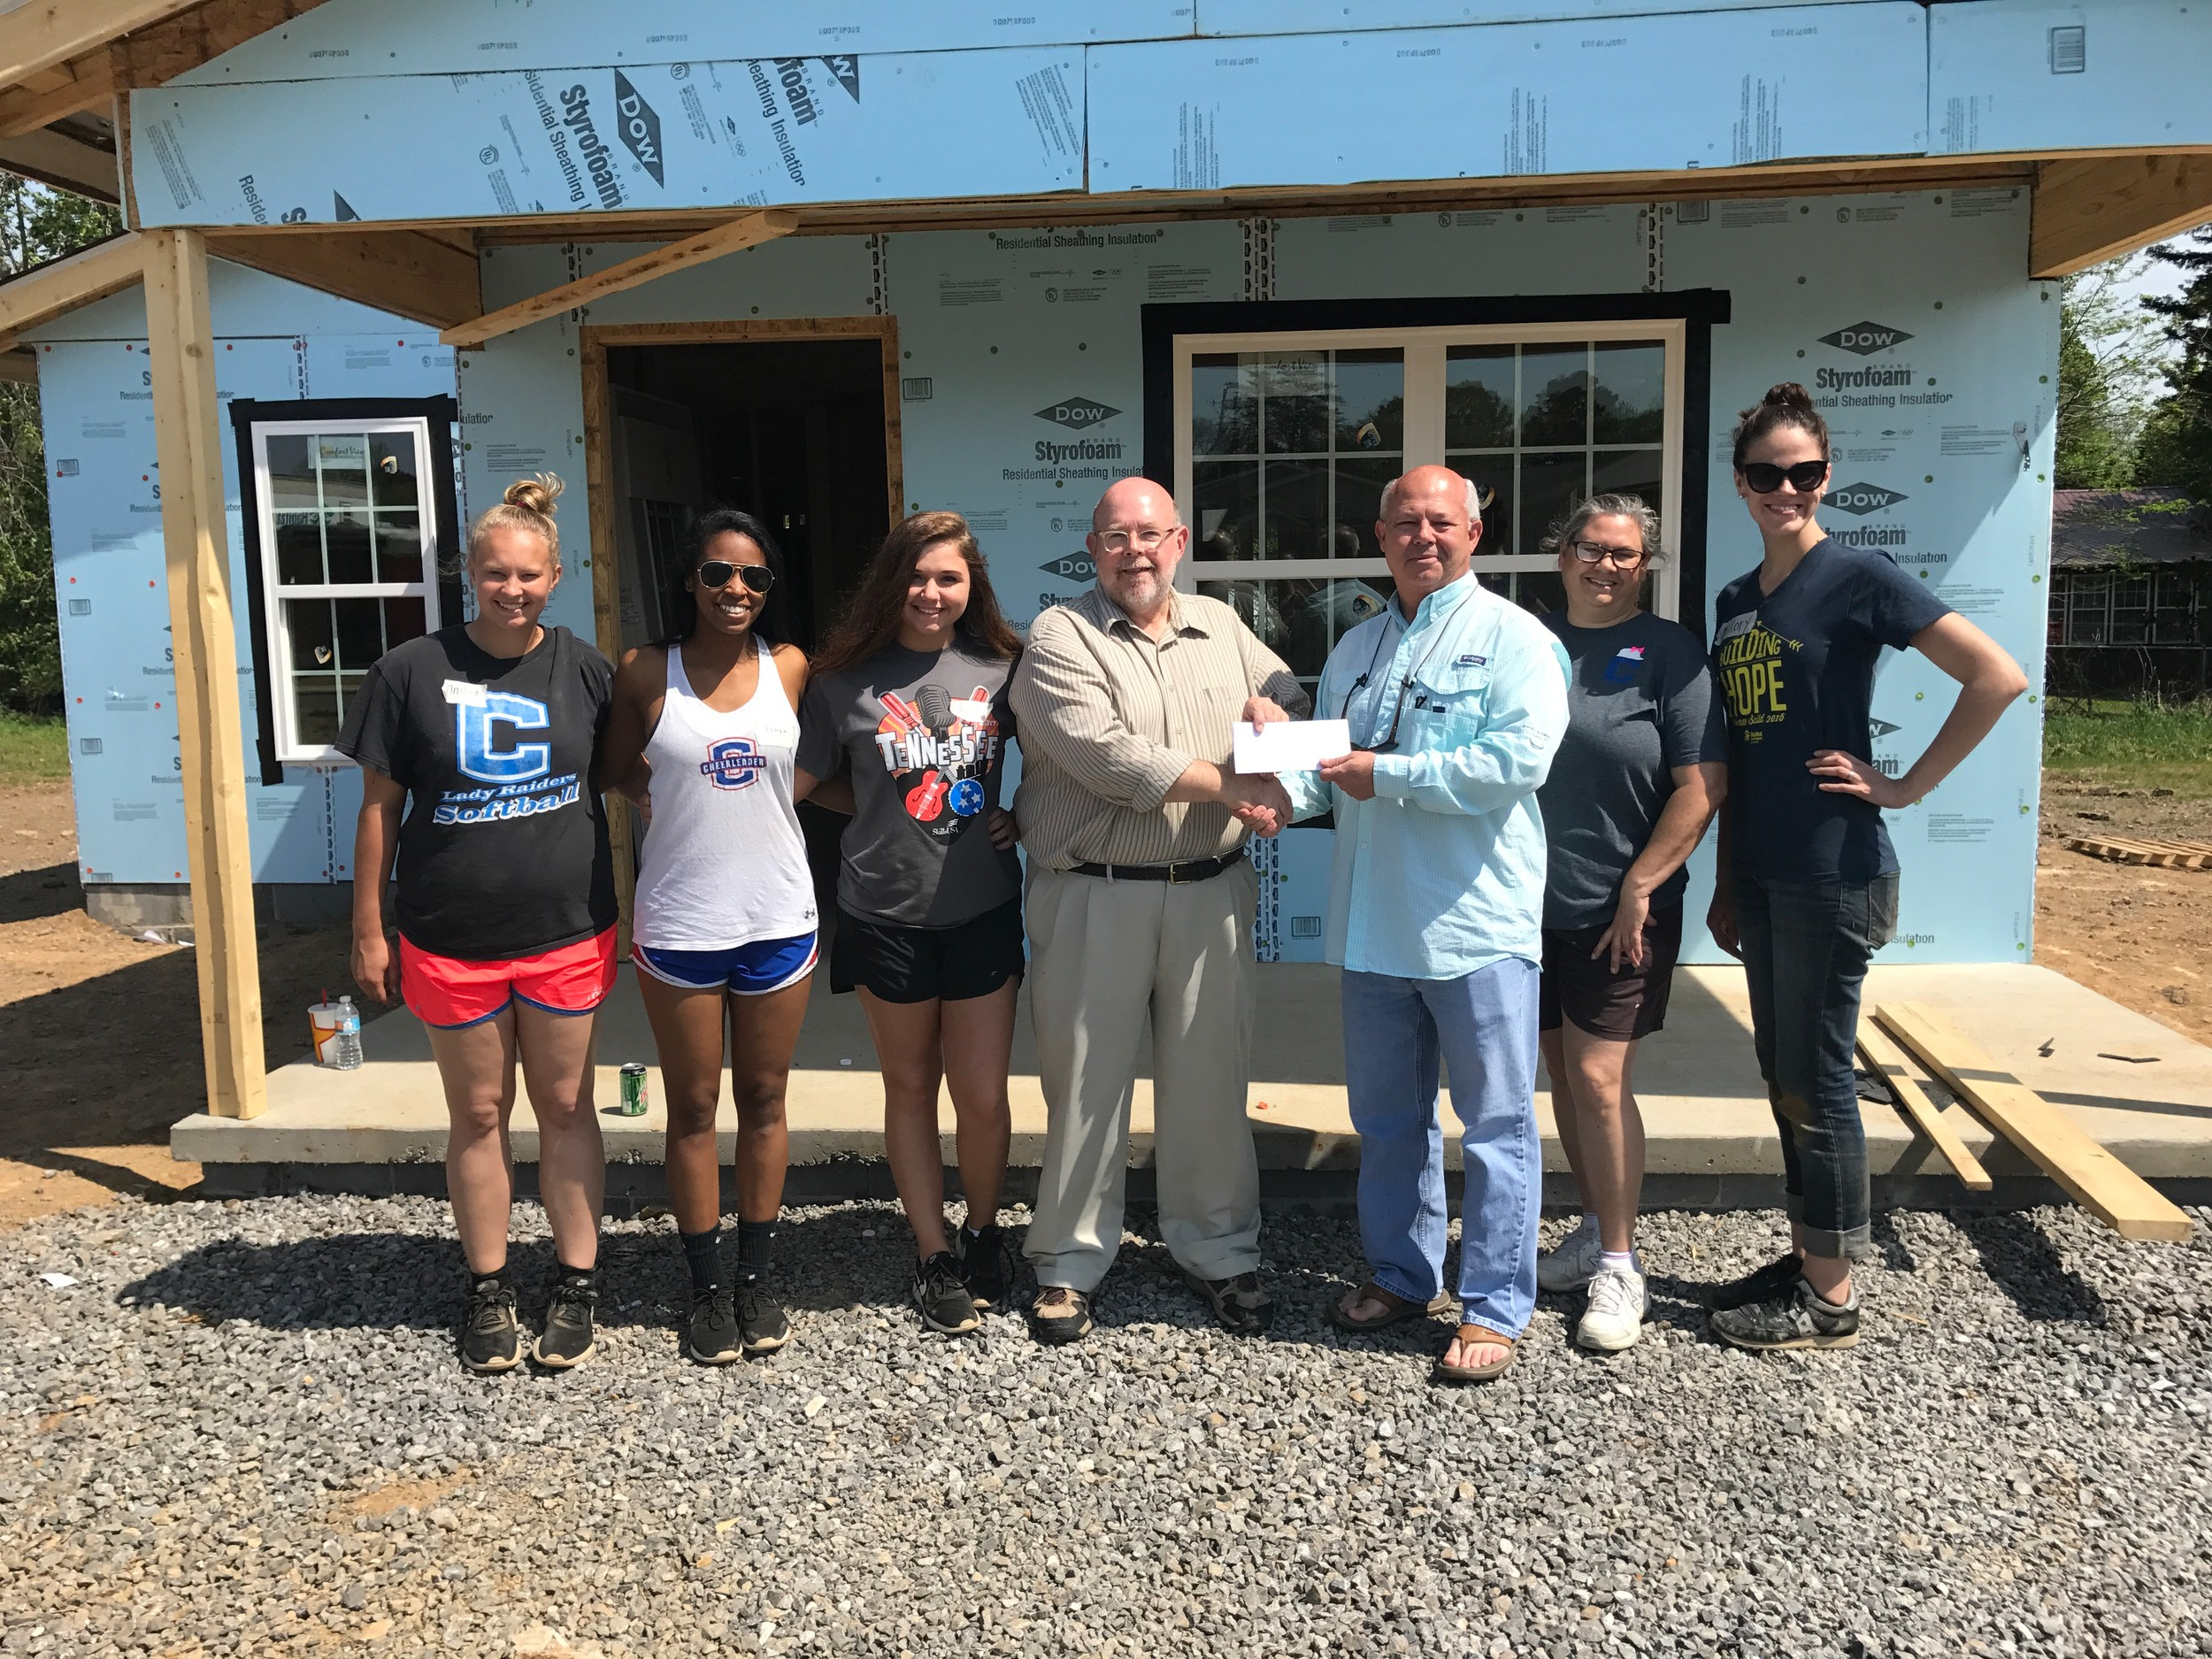 CLEVELAND HIGH SCHOOL'S Habitat For Humanity Women's Build team was sponsored by Southeast Bank. Standing, from left, are Ambra Belcher, Tehya Dyer, Josey McCluskey, Chip Willis (Habitat Executive Director), DeWayne Morrow (Southeast Bank City President), Cari Bosserdet, and Mallory Pickert.